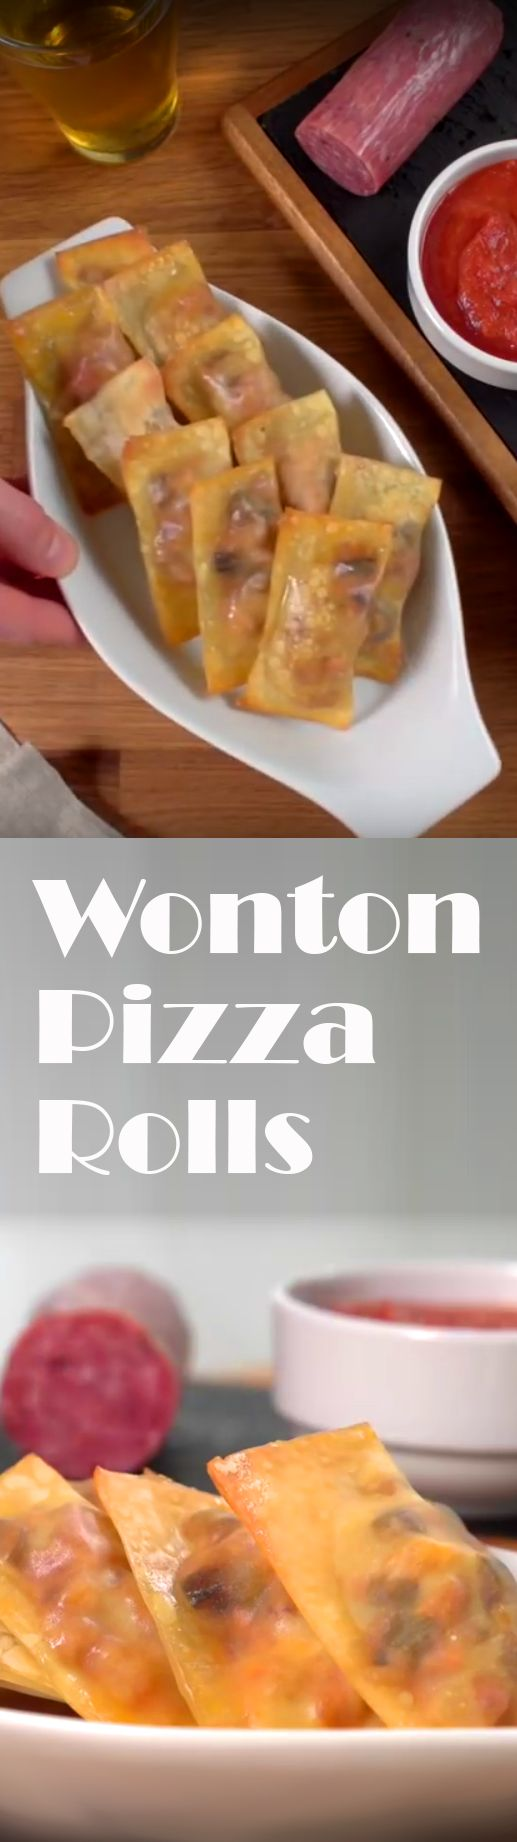 "Wonton Pizza Rolls Recipe | All the ""yum"" of pizza in a bite-sized package. Mix in Italian sausage, garlic, peppers, pepperoni, mozzarella, sauce, onions and mushroom in wrap it up in a wonton, then bake and enjoy. As easy as that! Click for the video and how to. #easyapps #pizzabites"